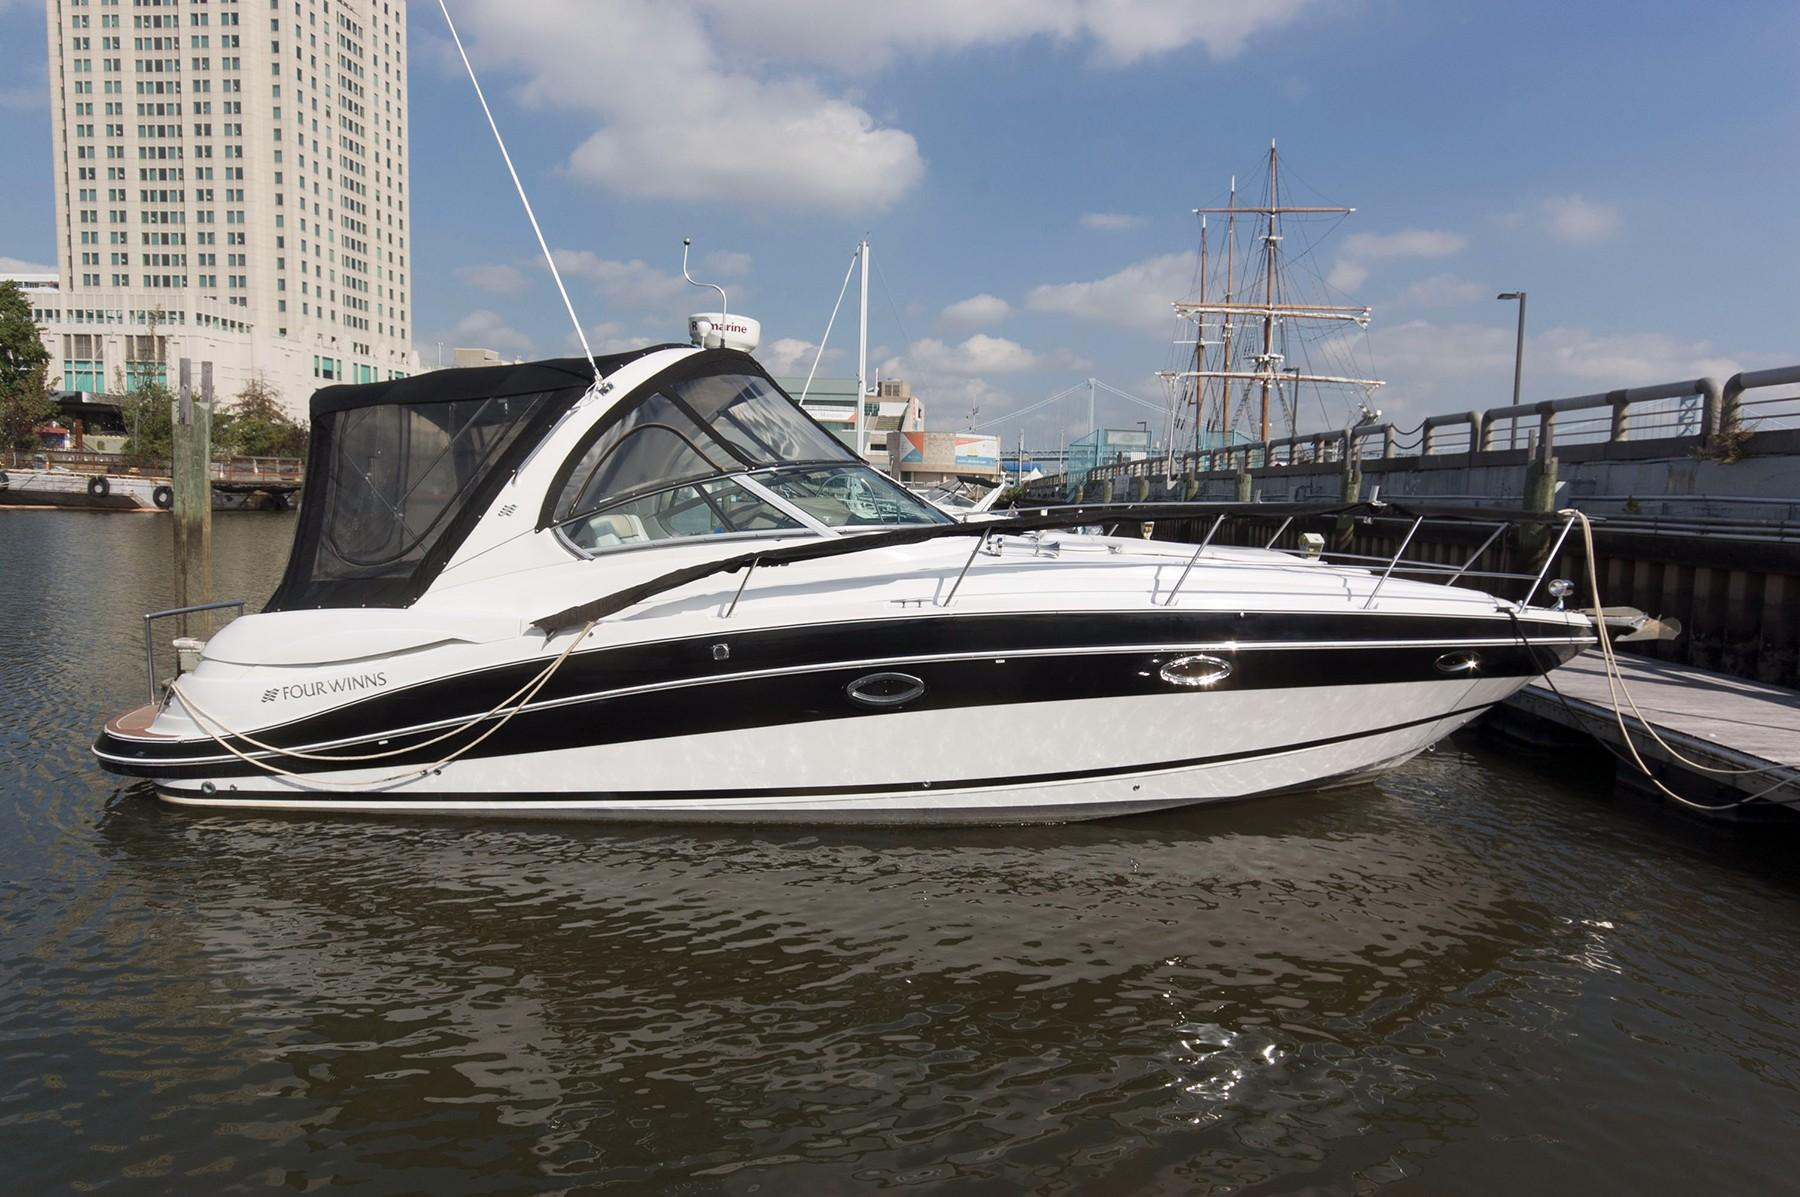 6386549_20171006162037250_1_XLARGE&w=520&h=346&t=1507335889000 search boats for sale yachtworld com  at gsmx.co